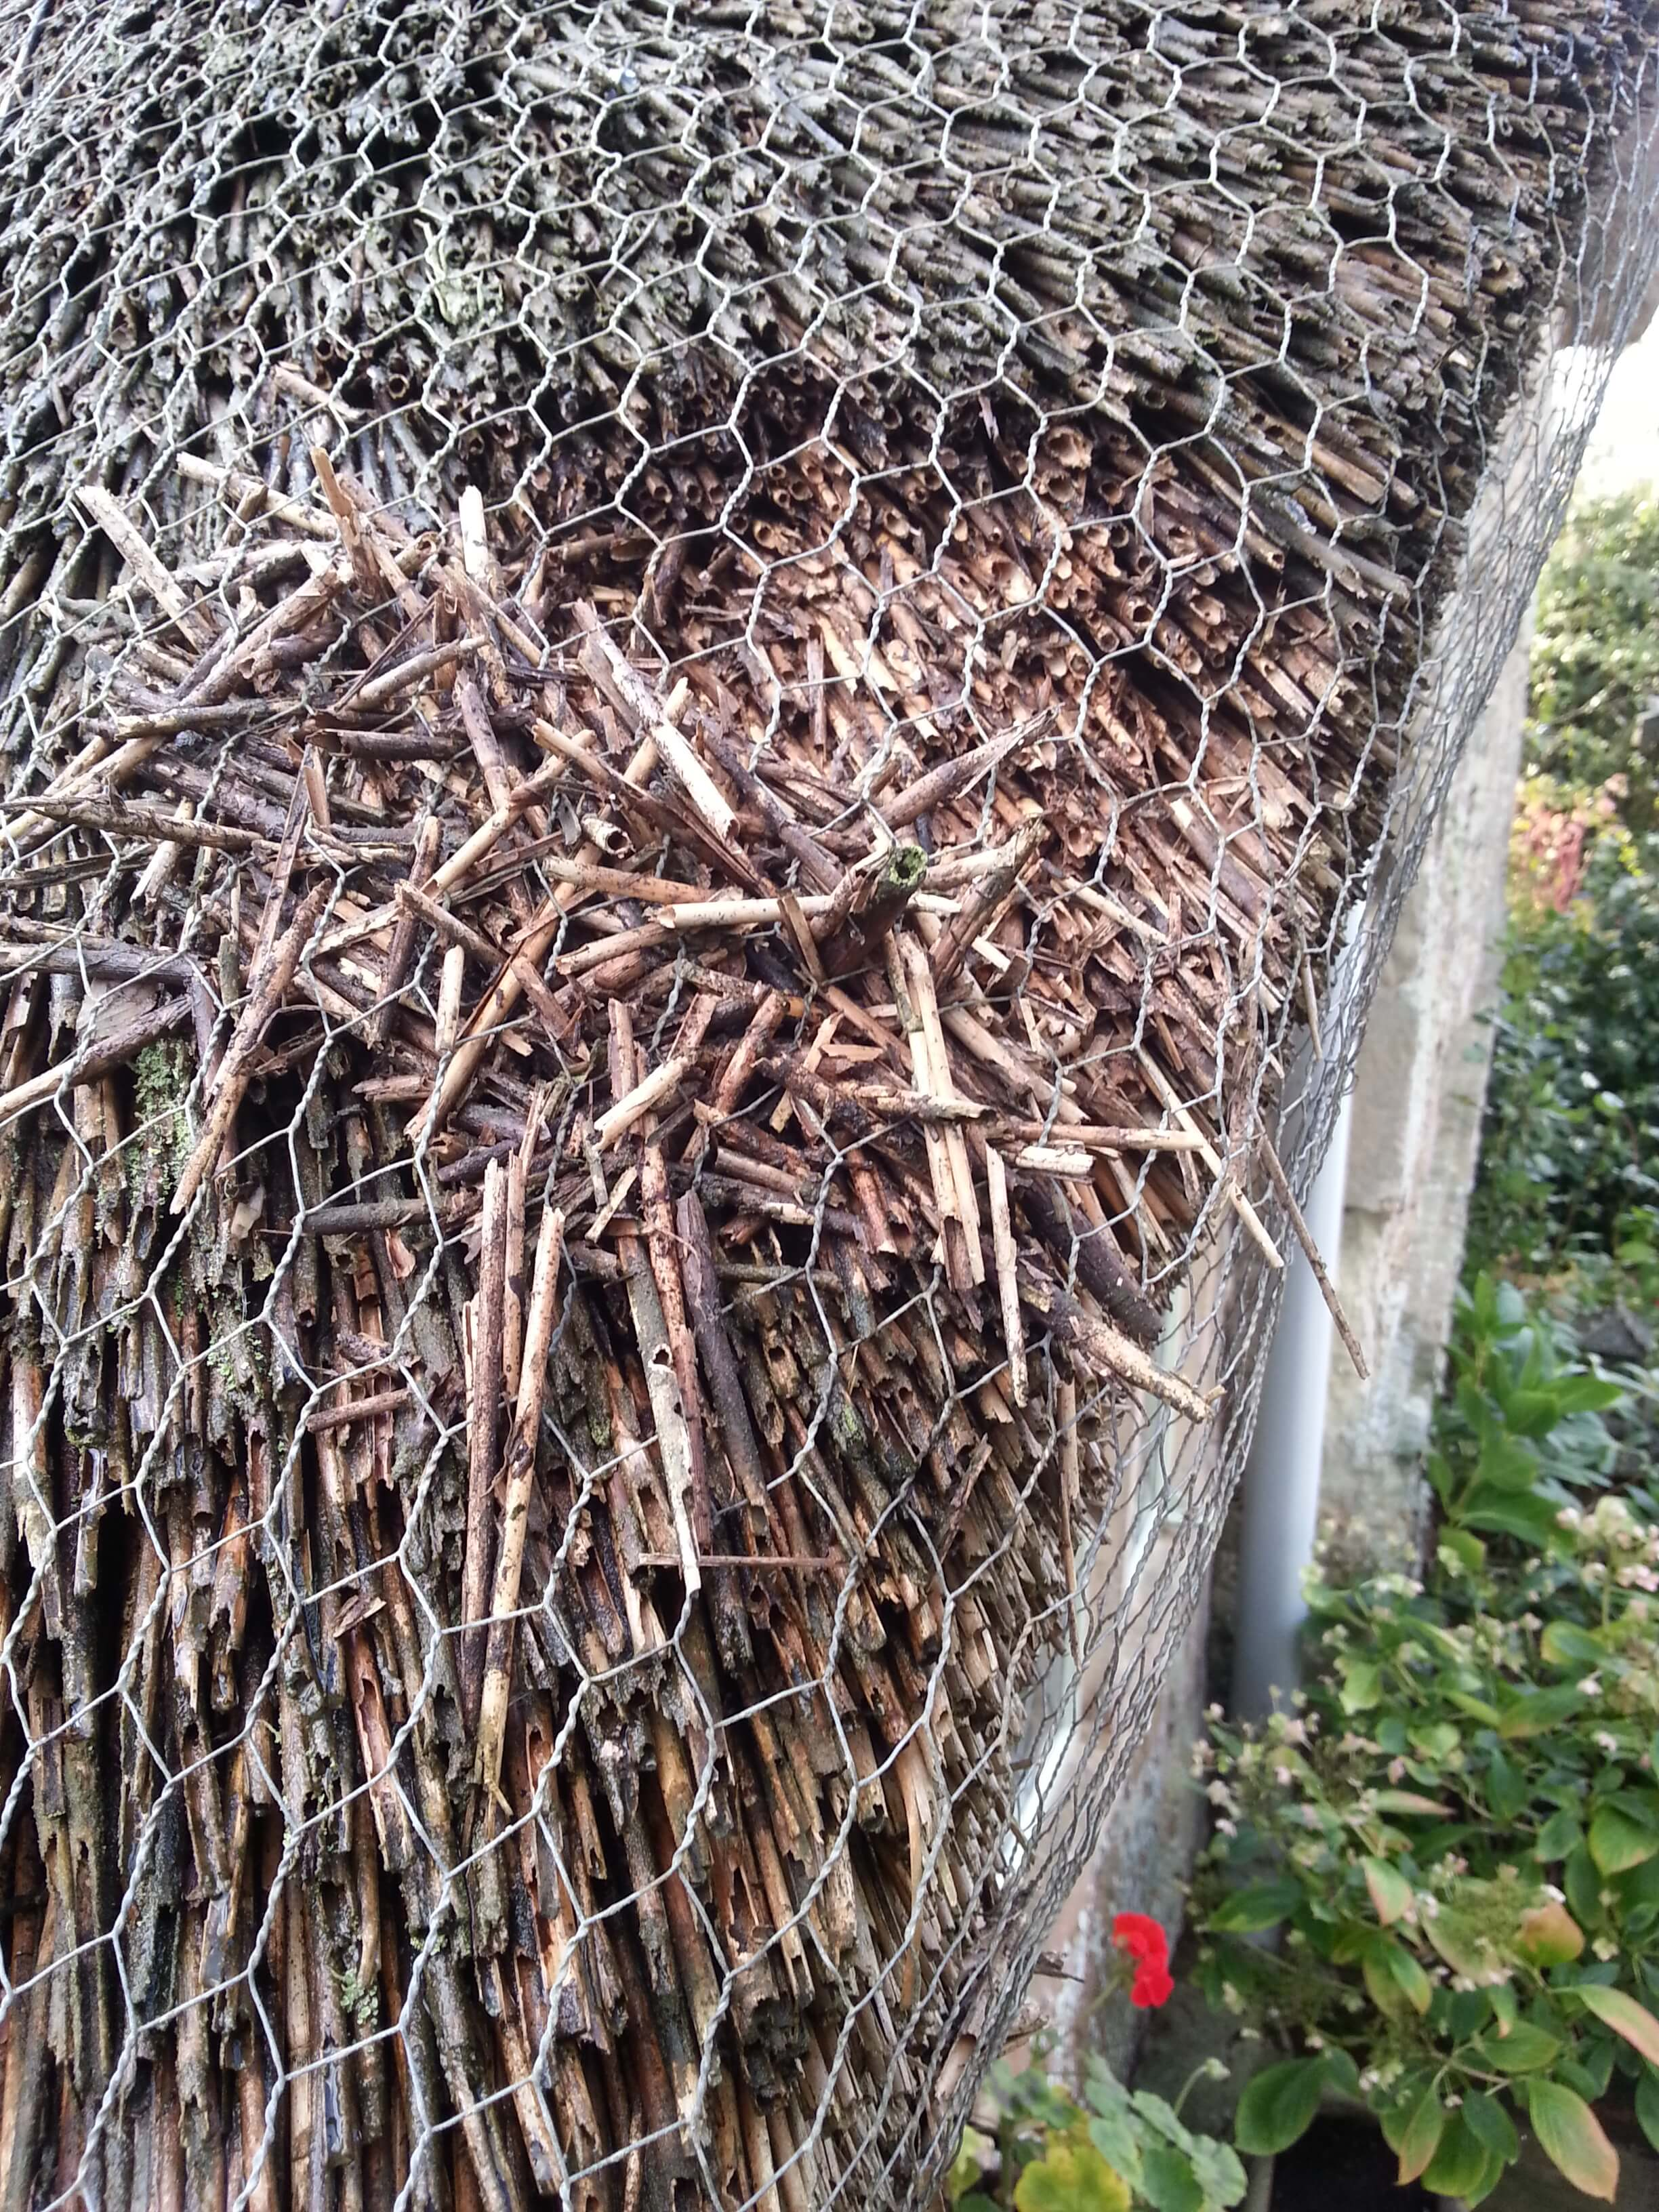 Thatch Pests And Ways To Deal With Them